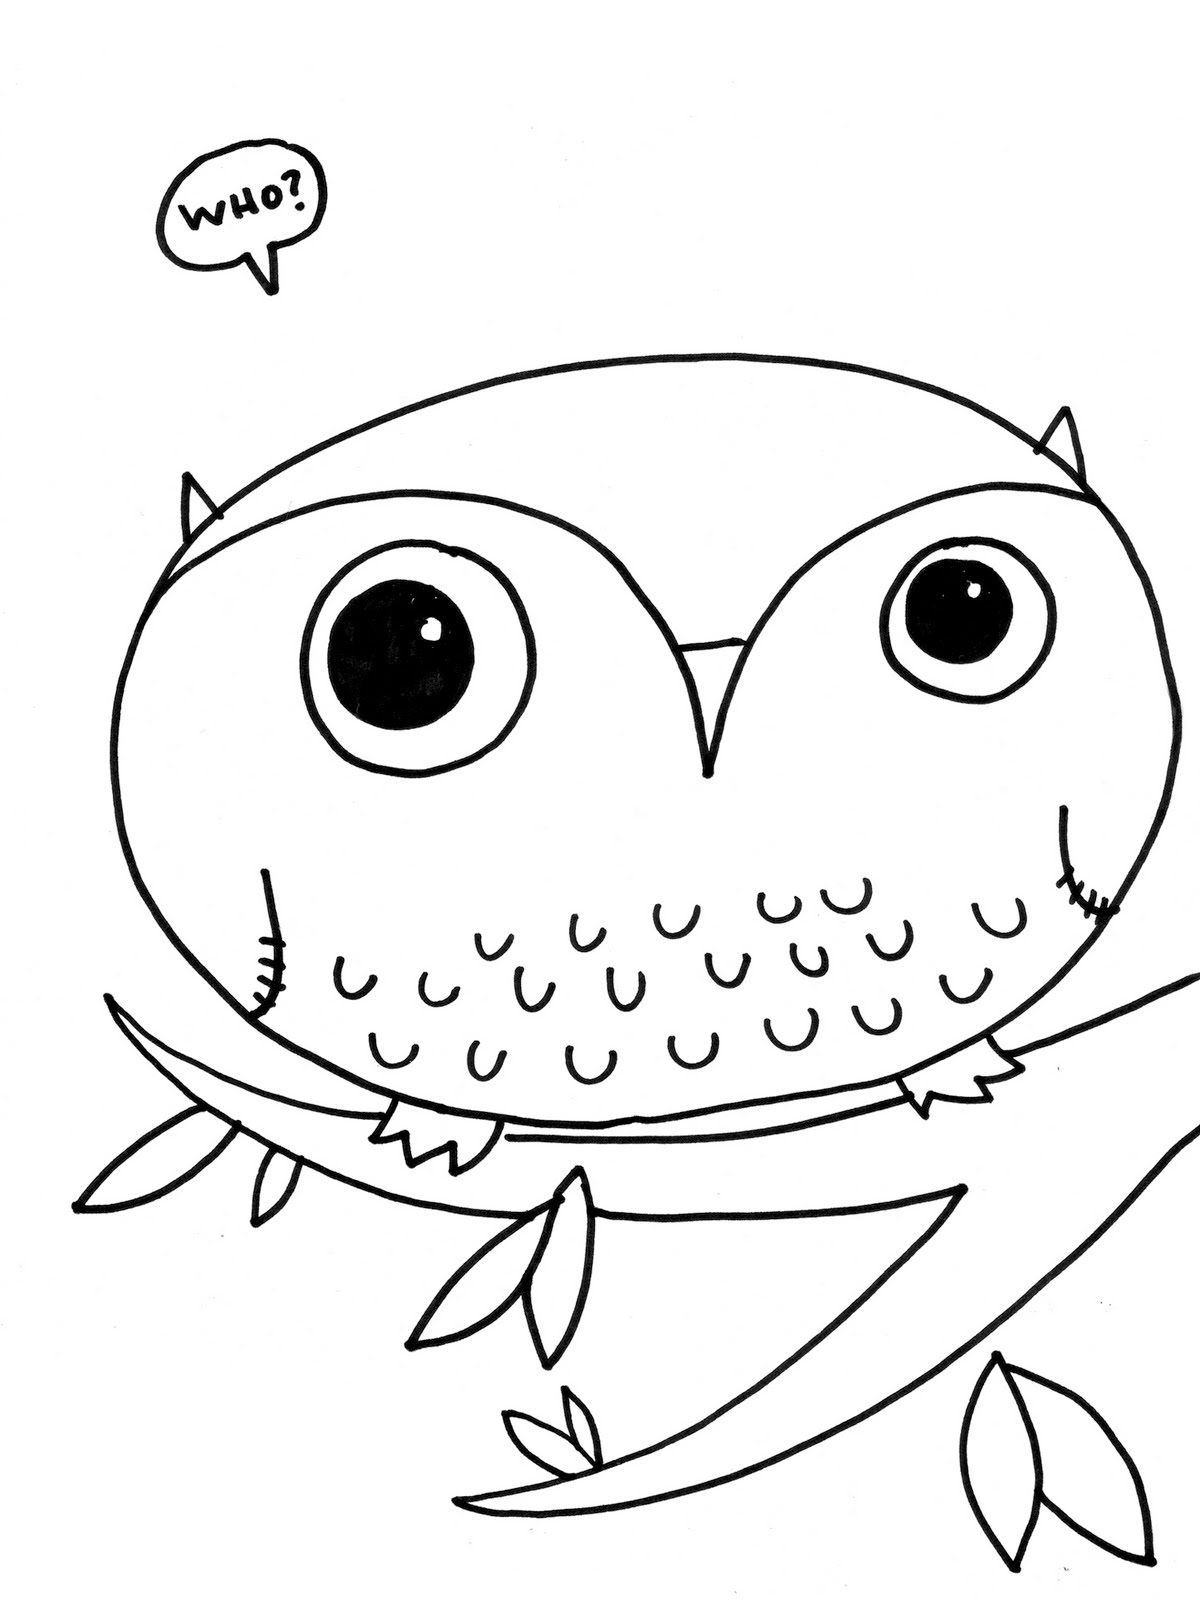 Free Printable Owl Coloring Pages For Kids Free Coloring Page Printables